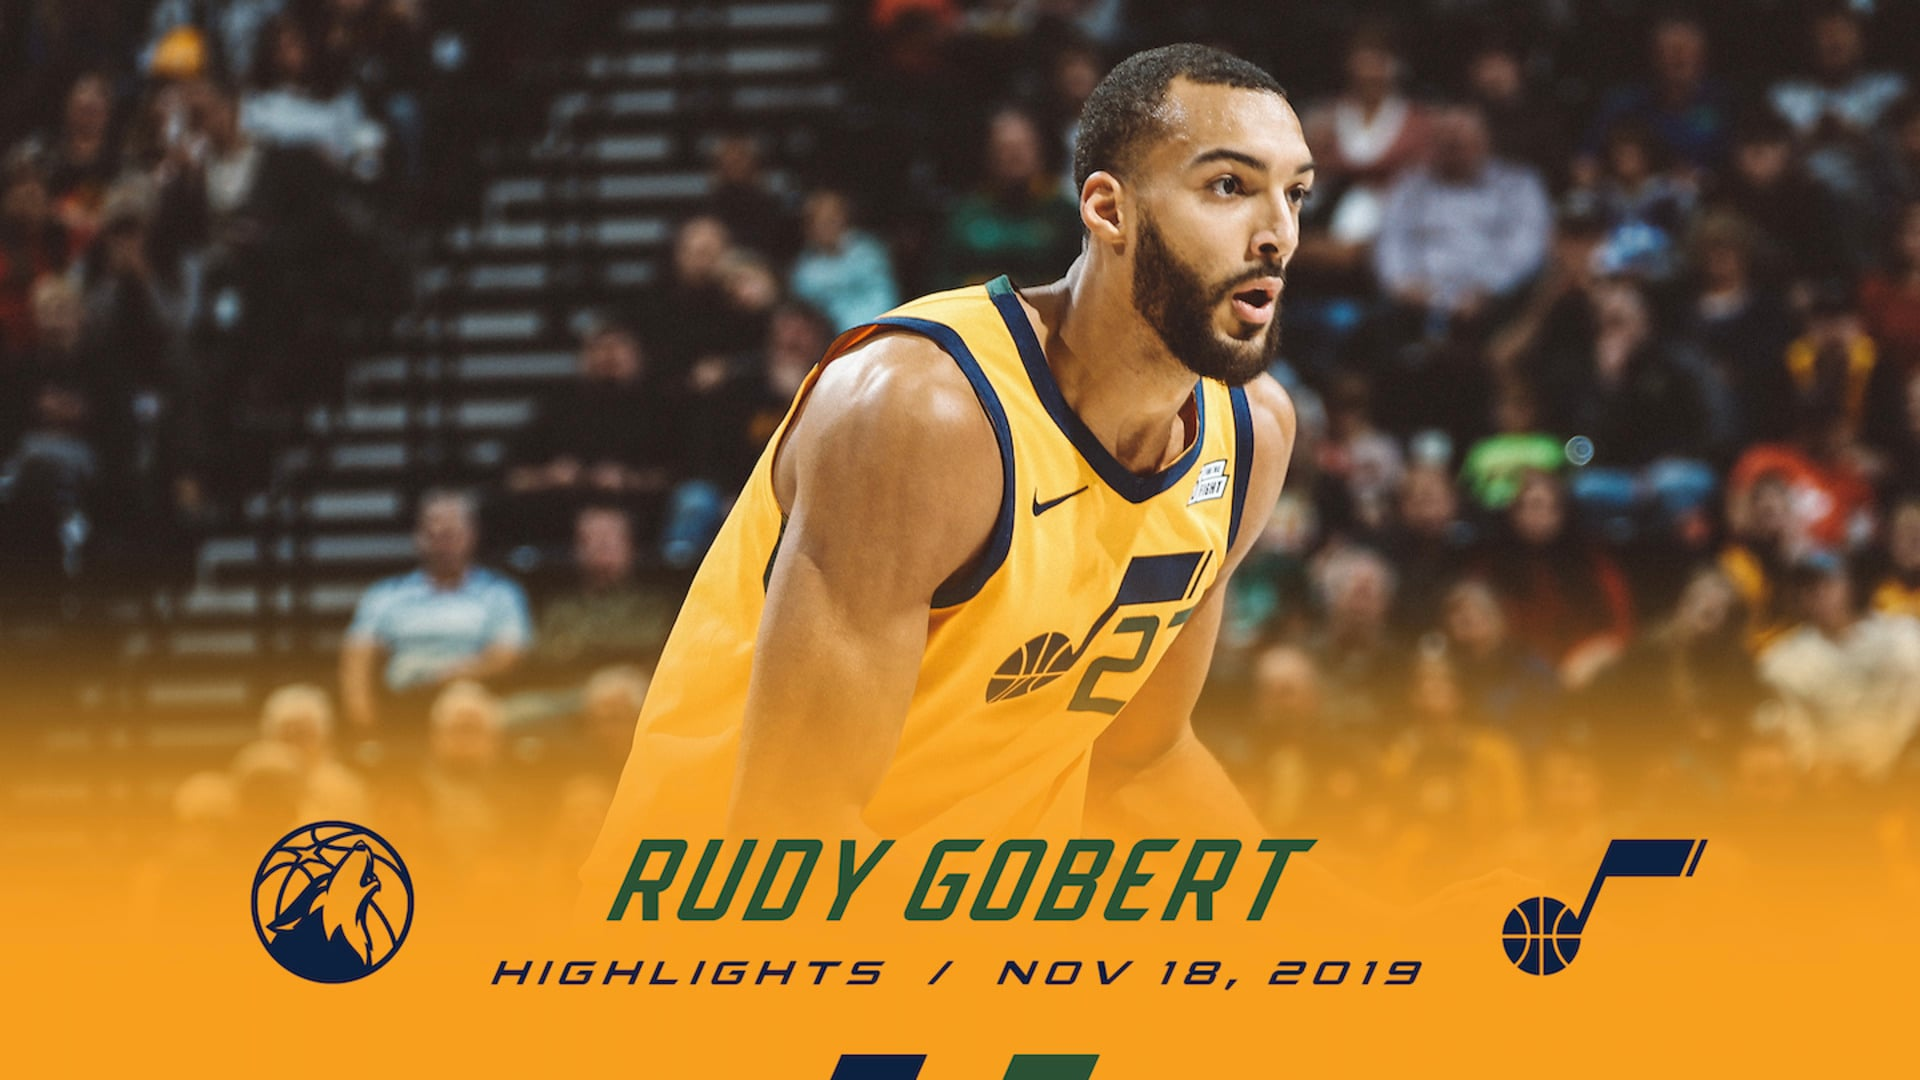 Highlights: Rudy Gobert — 16 points, 14 rebounds